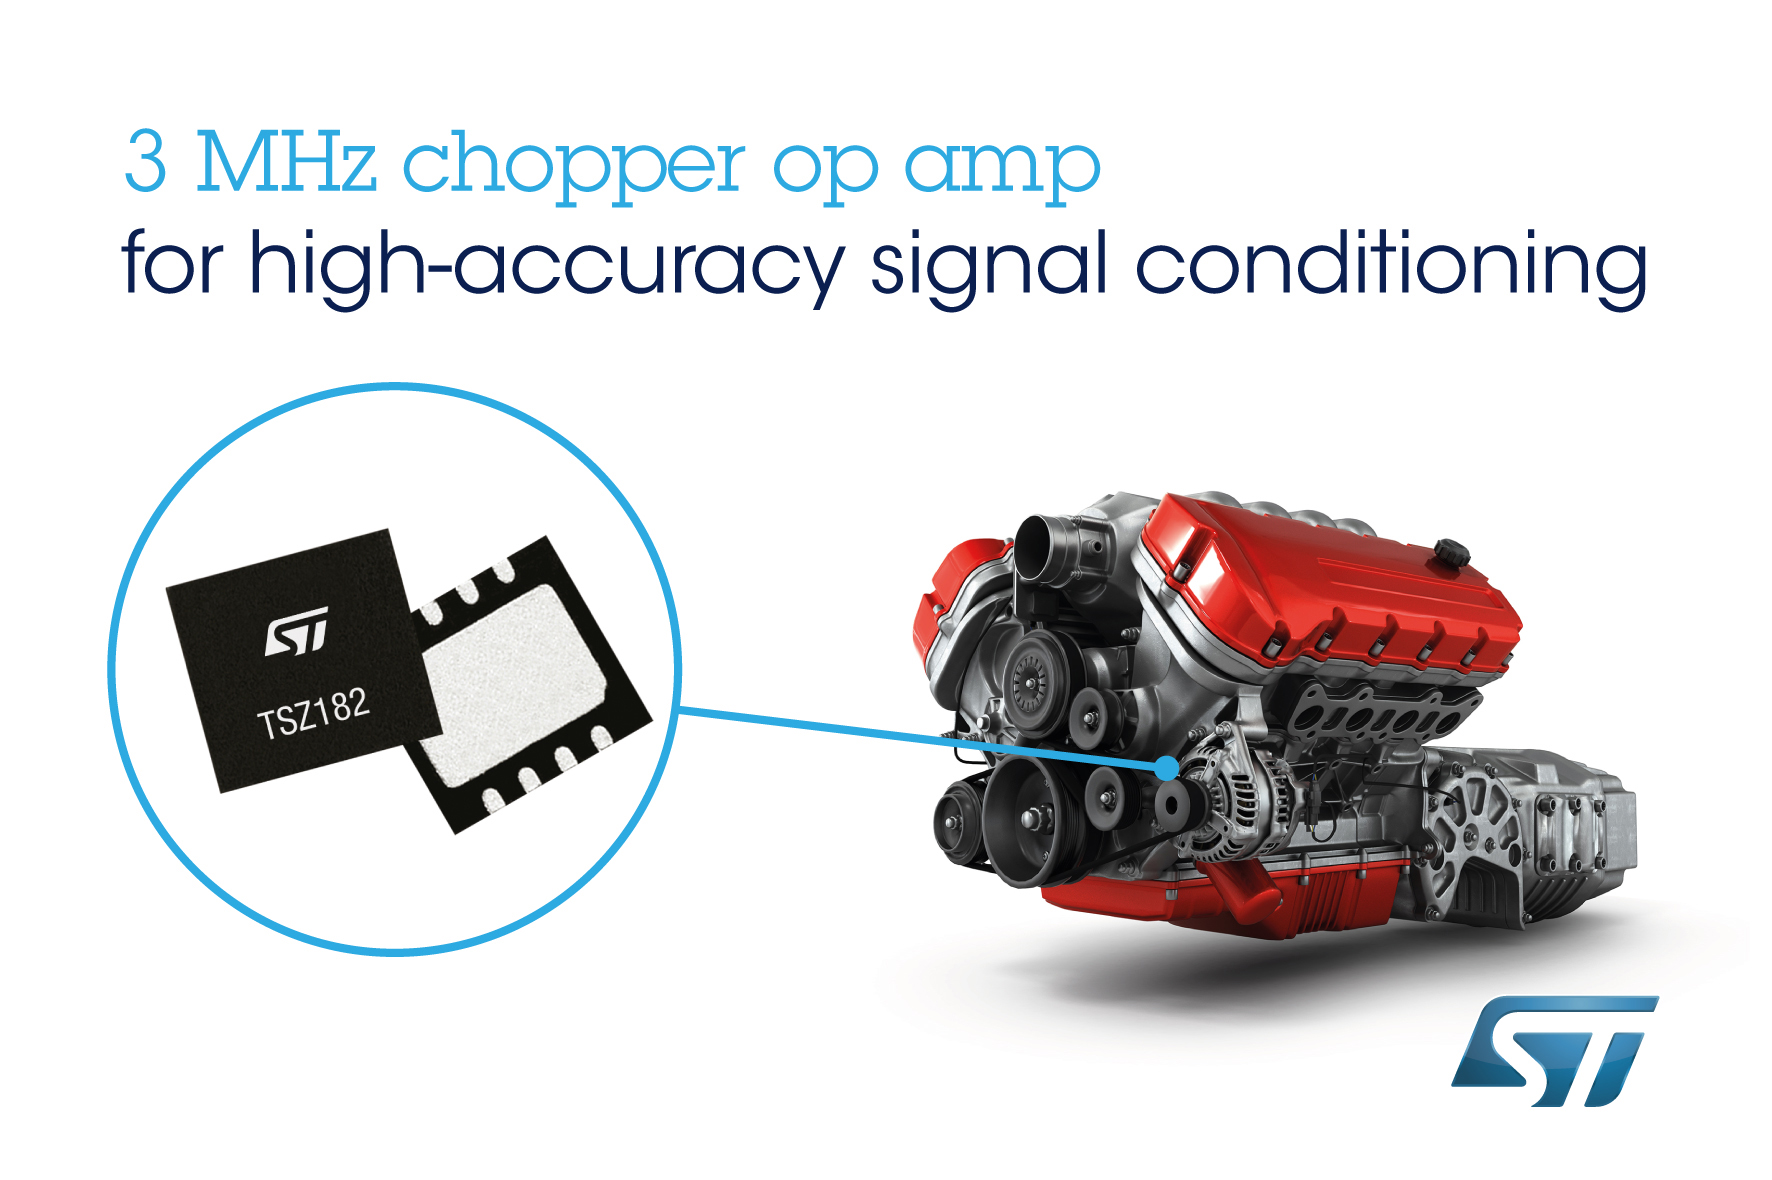 3mhz Chopper Op Amps From Stmicroelectronics Feature Rail To Temperature Alarm With Amp Comparator Input And Output In Tiny Footprint